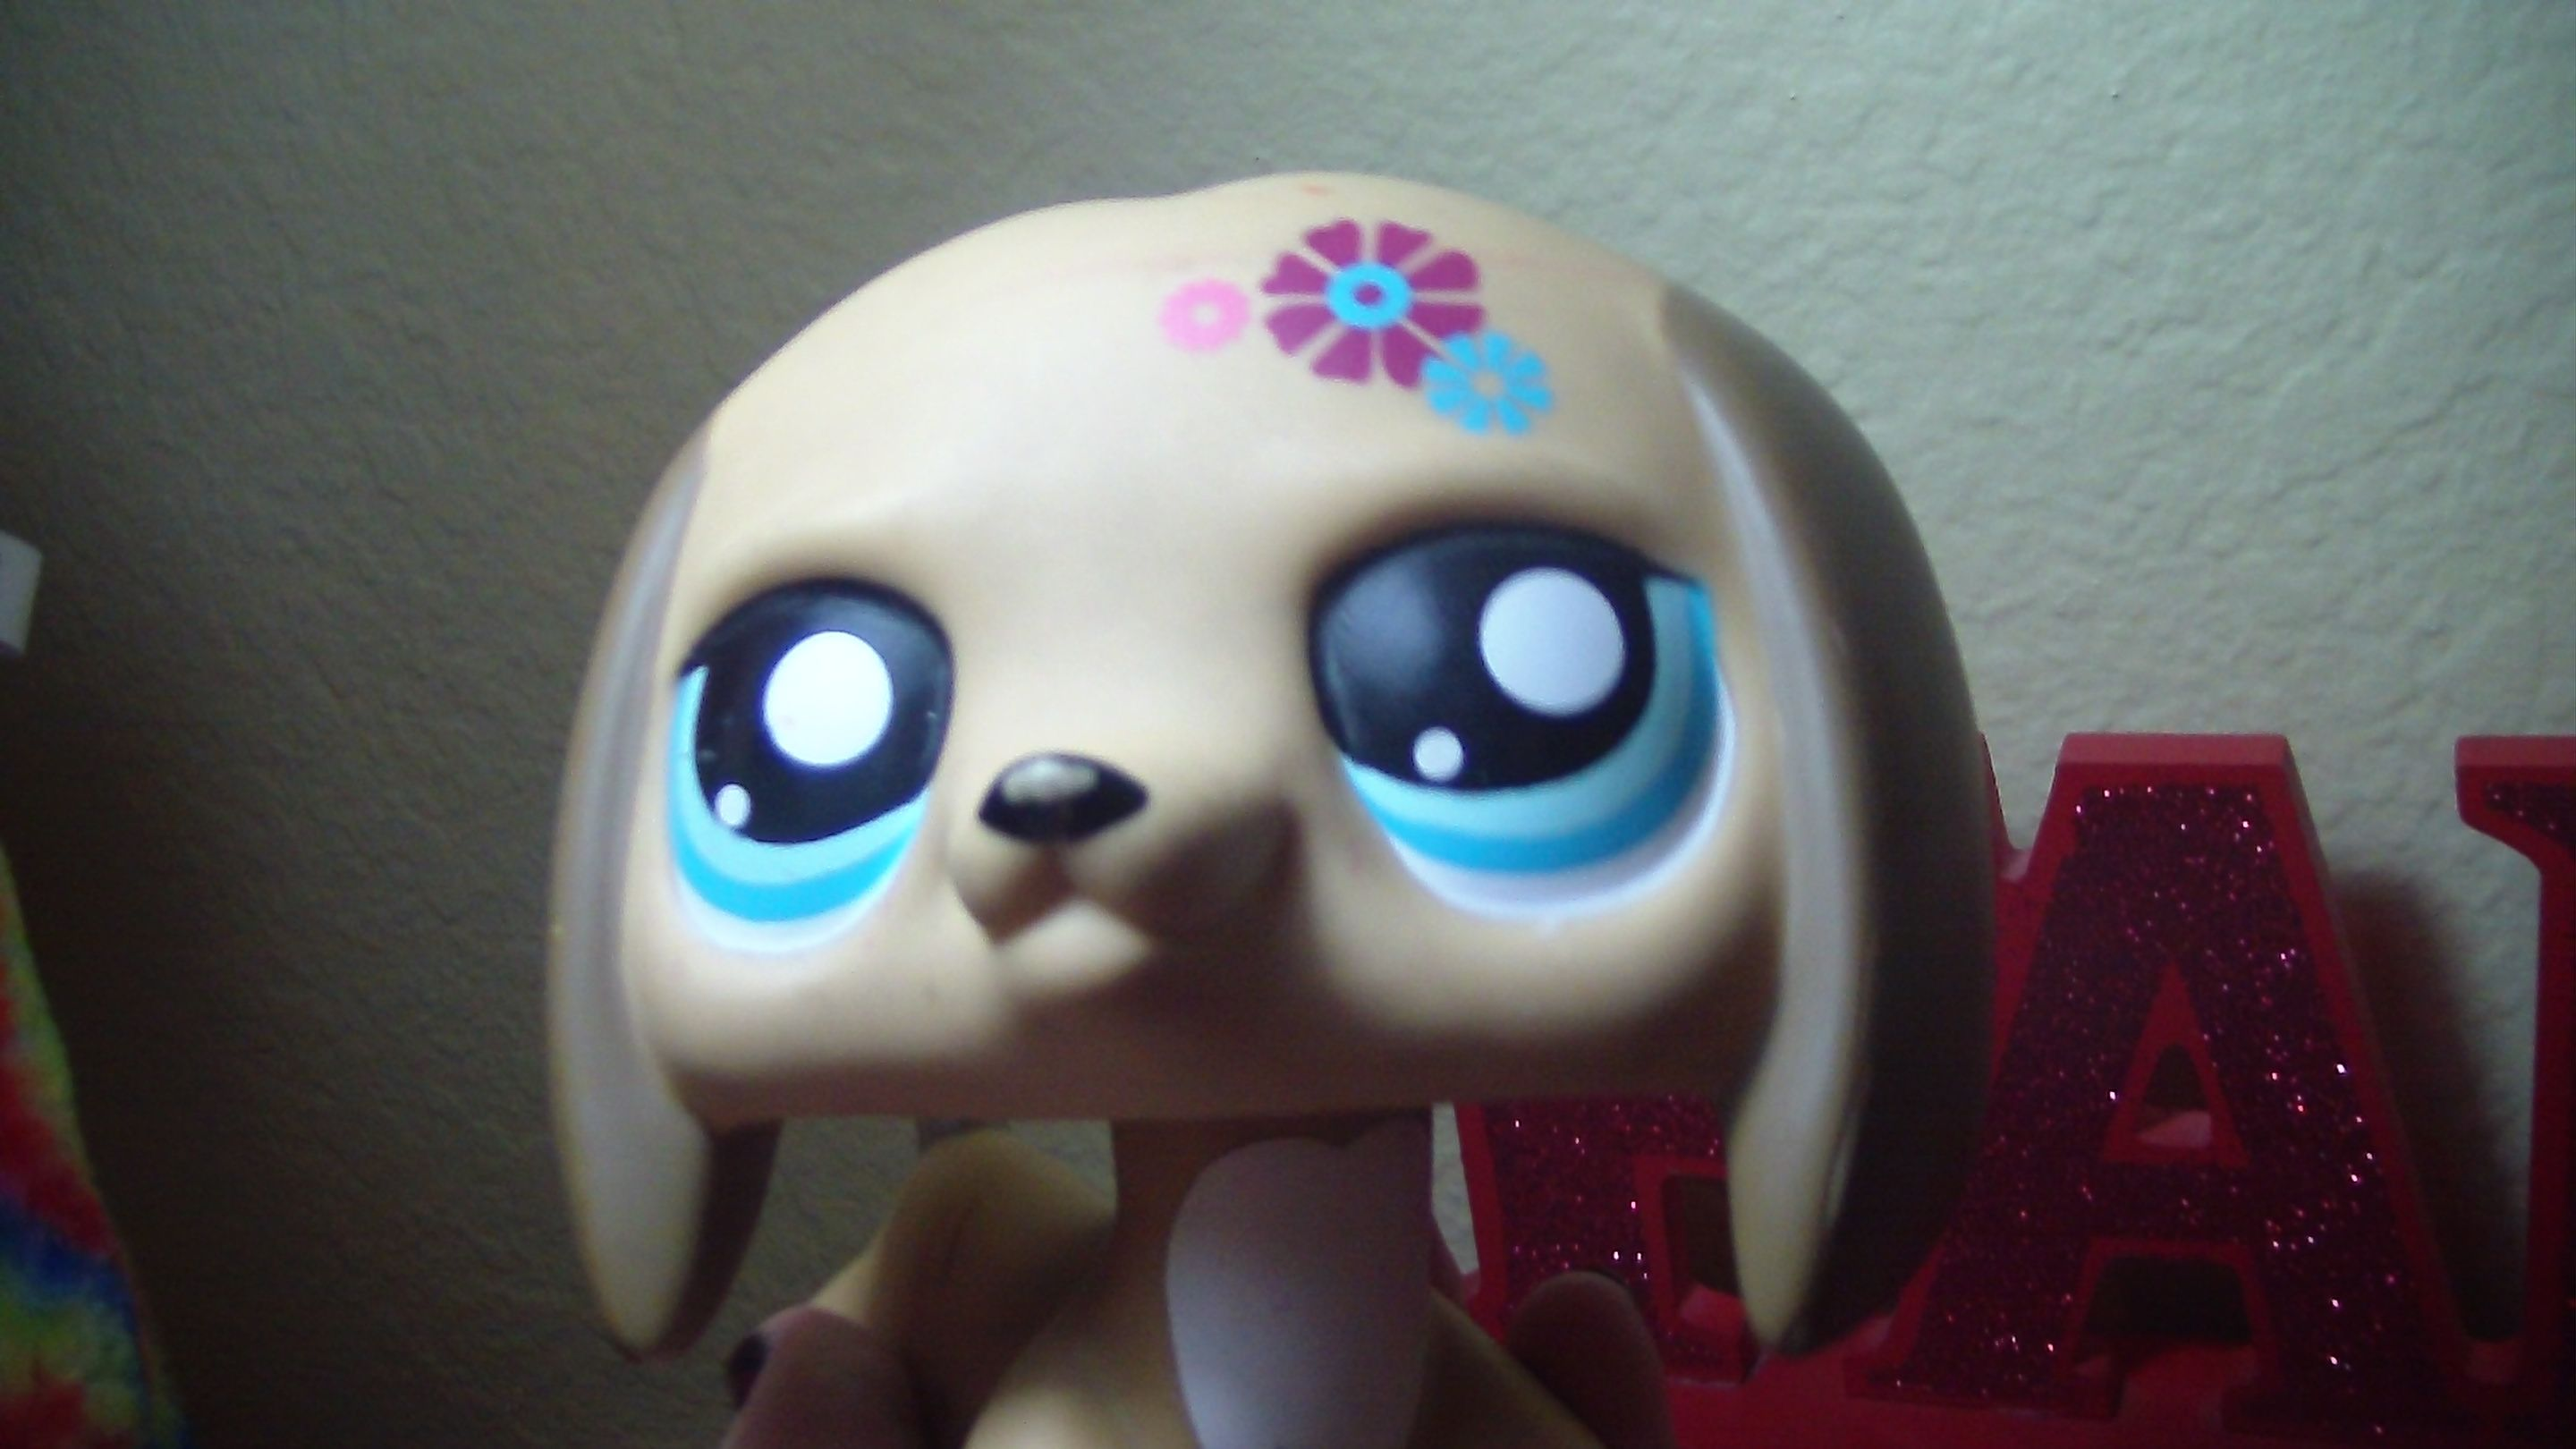 THIS IS WHO I CALL BURGER DOG! #NOT MY LPS #OLD FRIENDS LPS